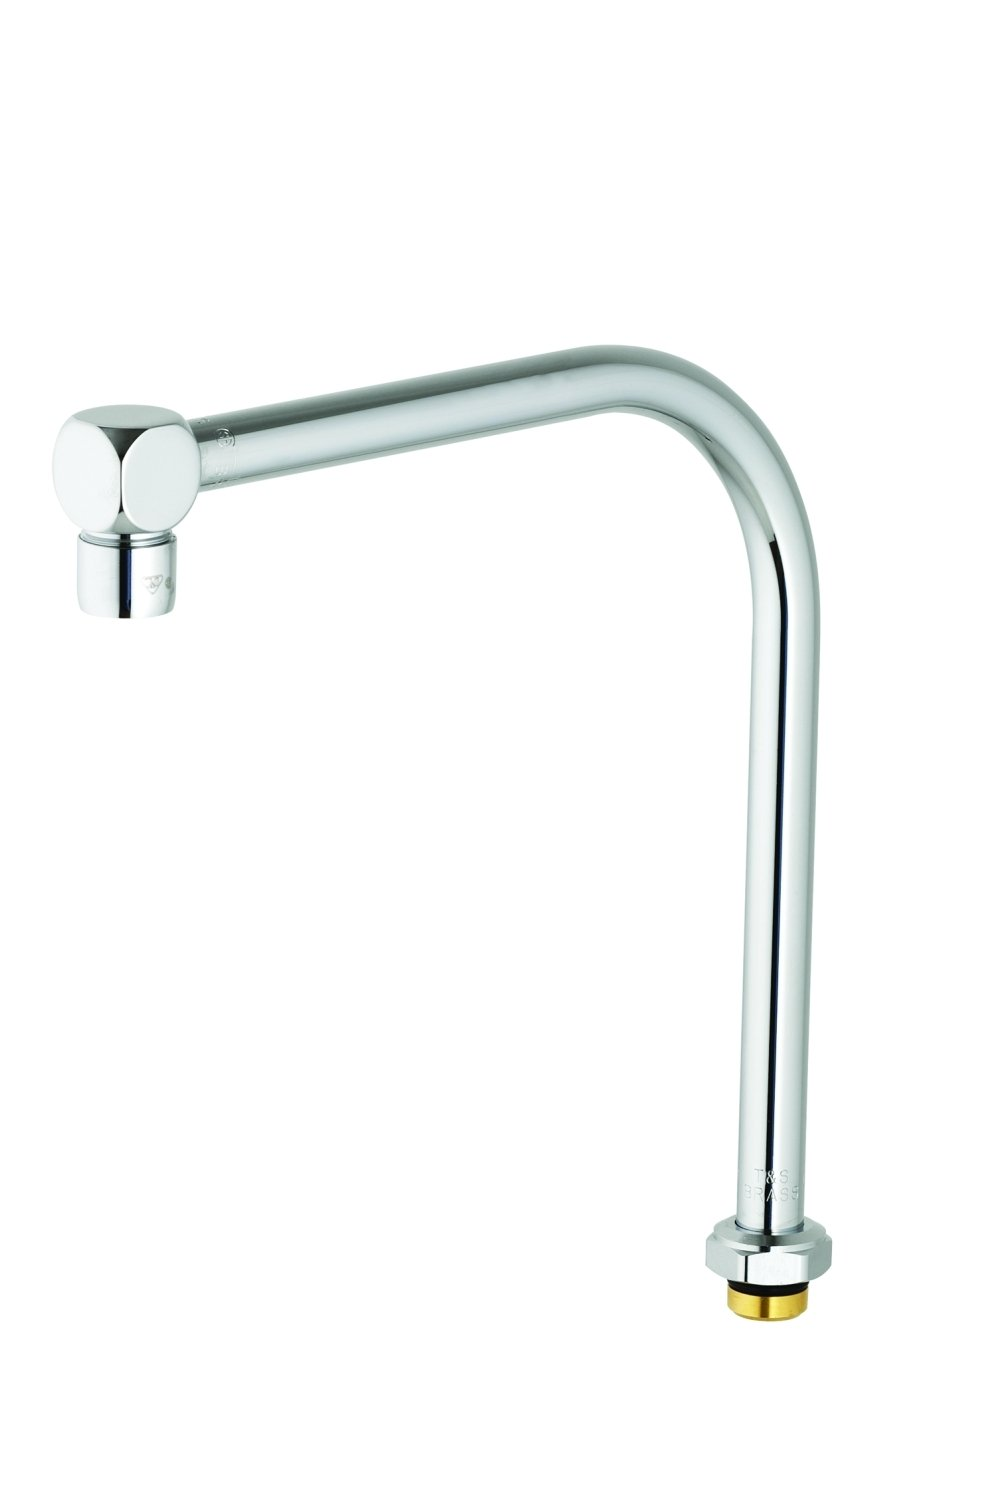 T&S Brass B-2403 Swivel Gooseneck Assembly with High Rise Swing Spout and Cube Style Aerator Outlet